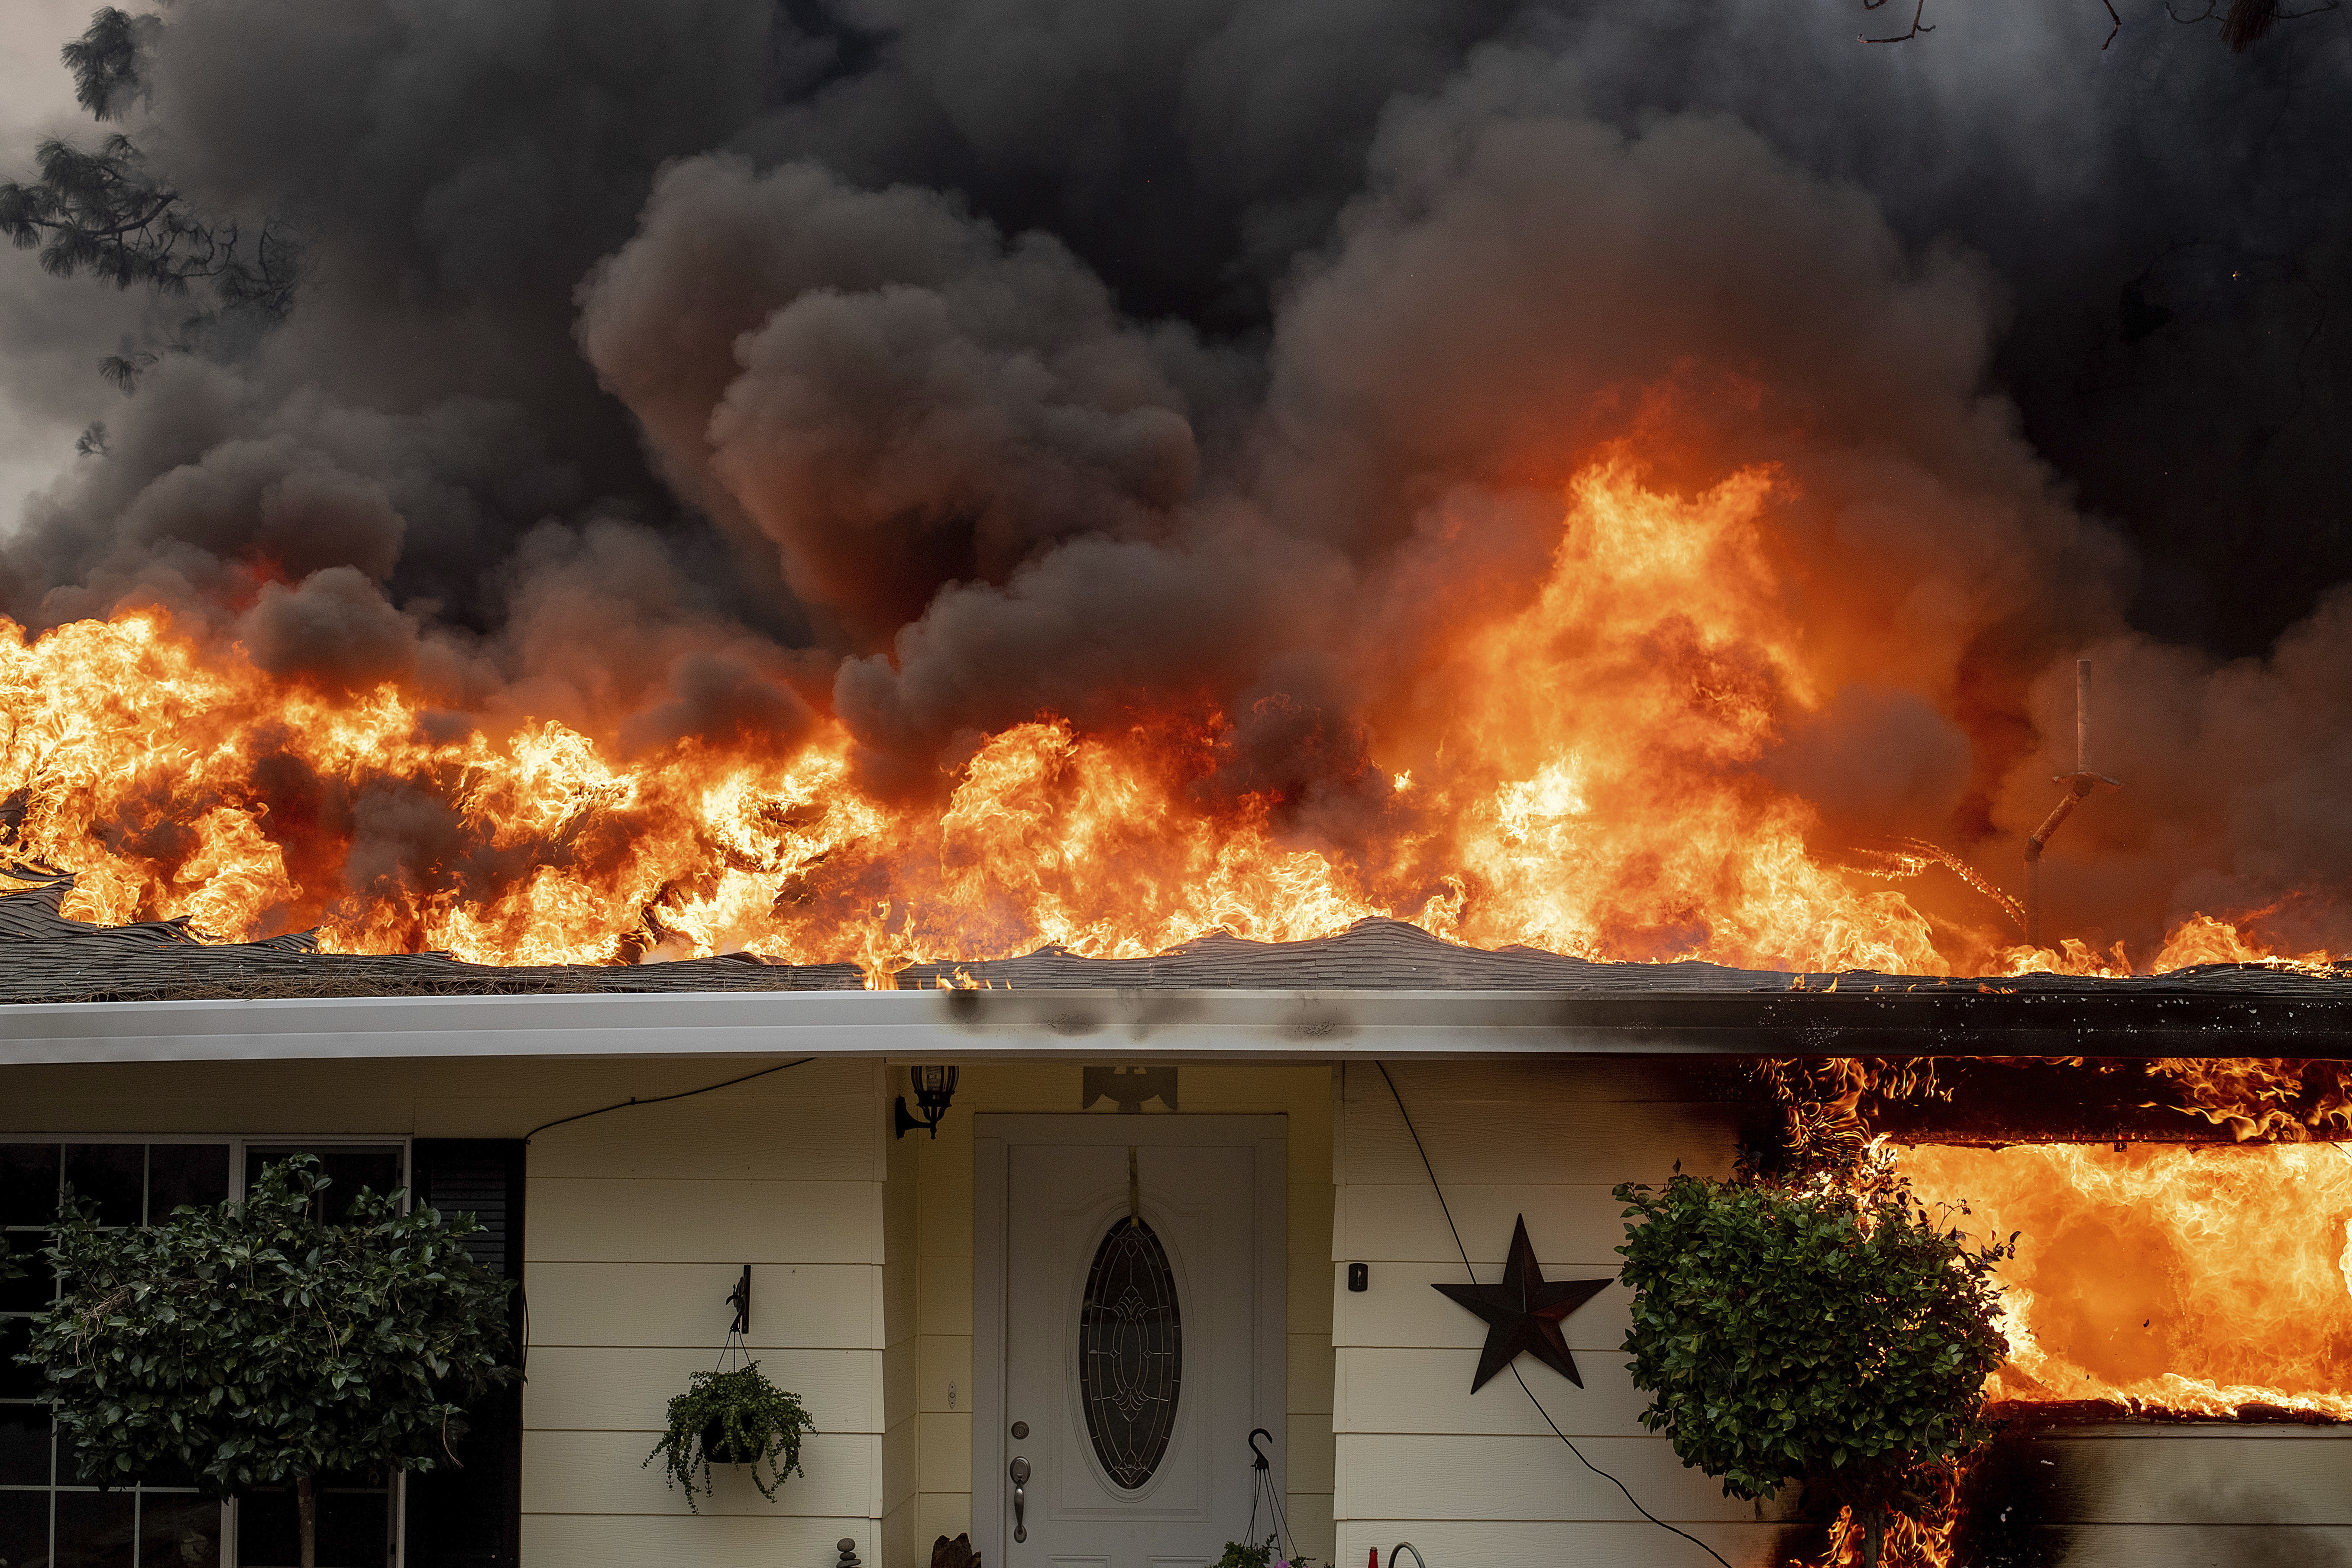 Flames consume a home as the Camp Fire tears through Paradise, Calif., on Thursday, Nov. 8, 2018. A California fire official says a fast-moving wildfire in Northern California has destroyed structures and injured civilians. (AP Photo/Noah Berger)